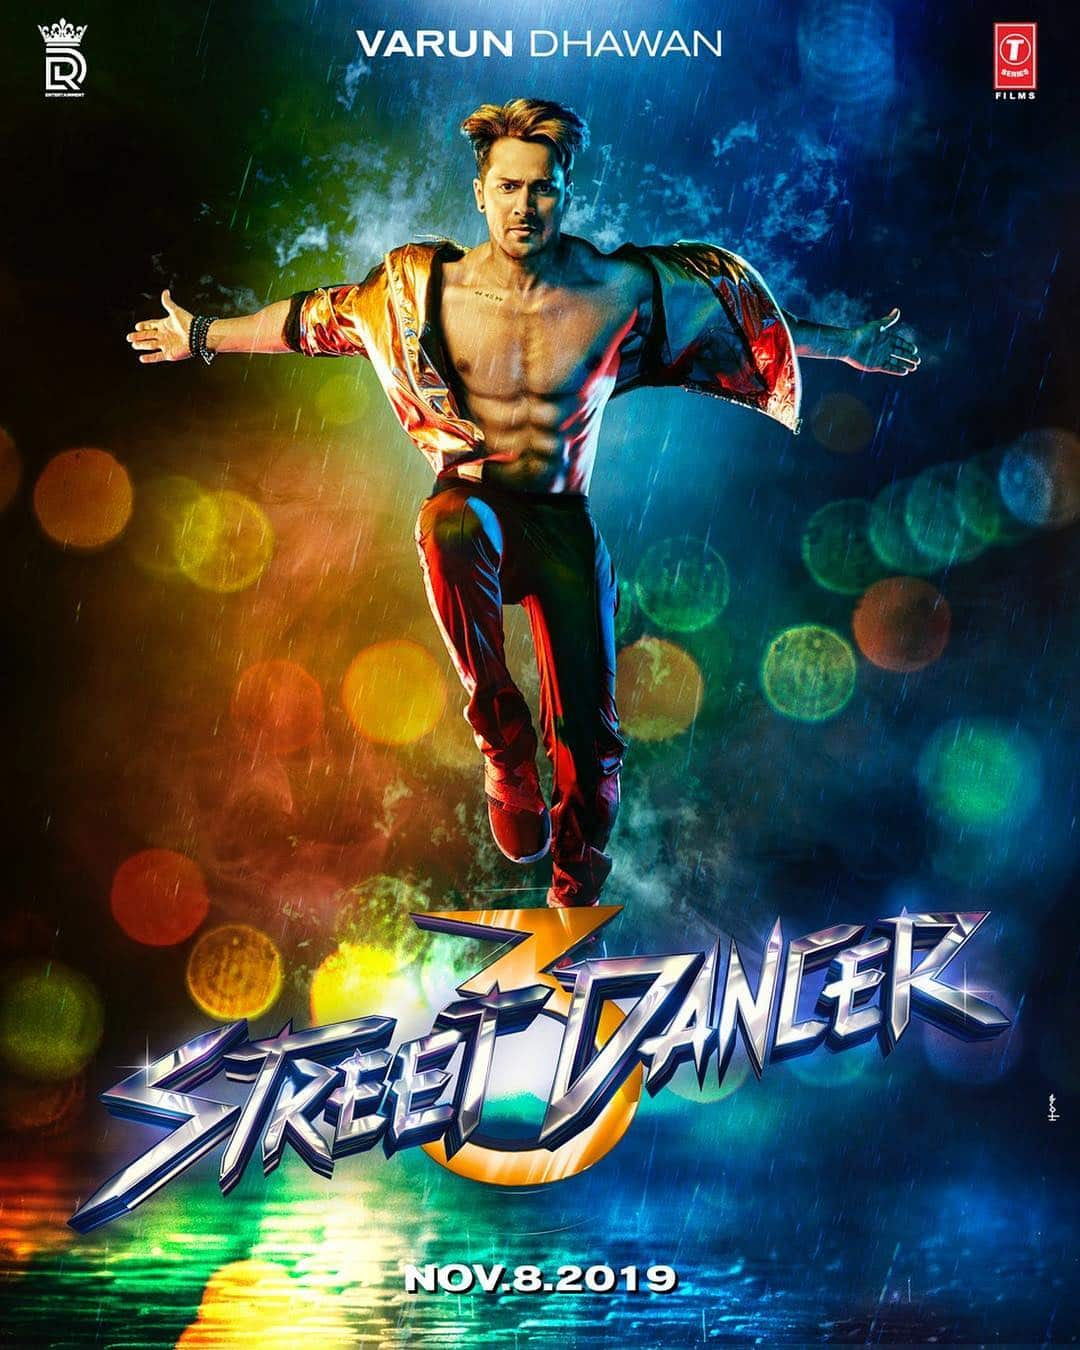 Varun Dhawan Being Paid Rs. 33 Crores For Street Dancer 3D?